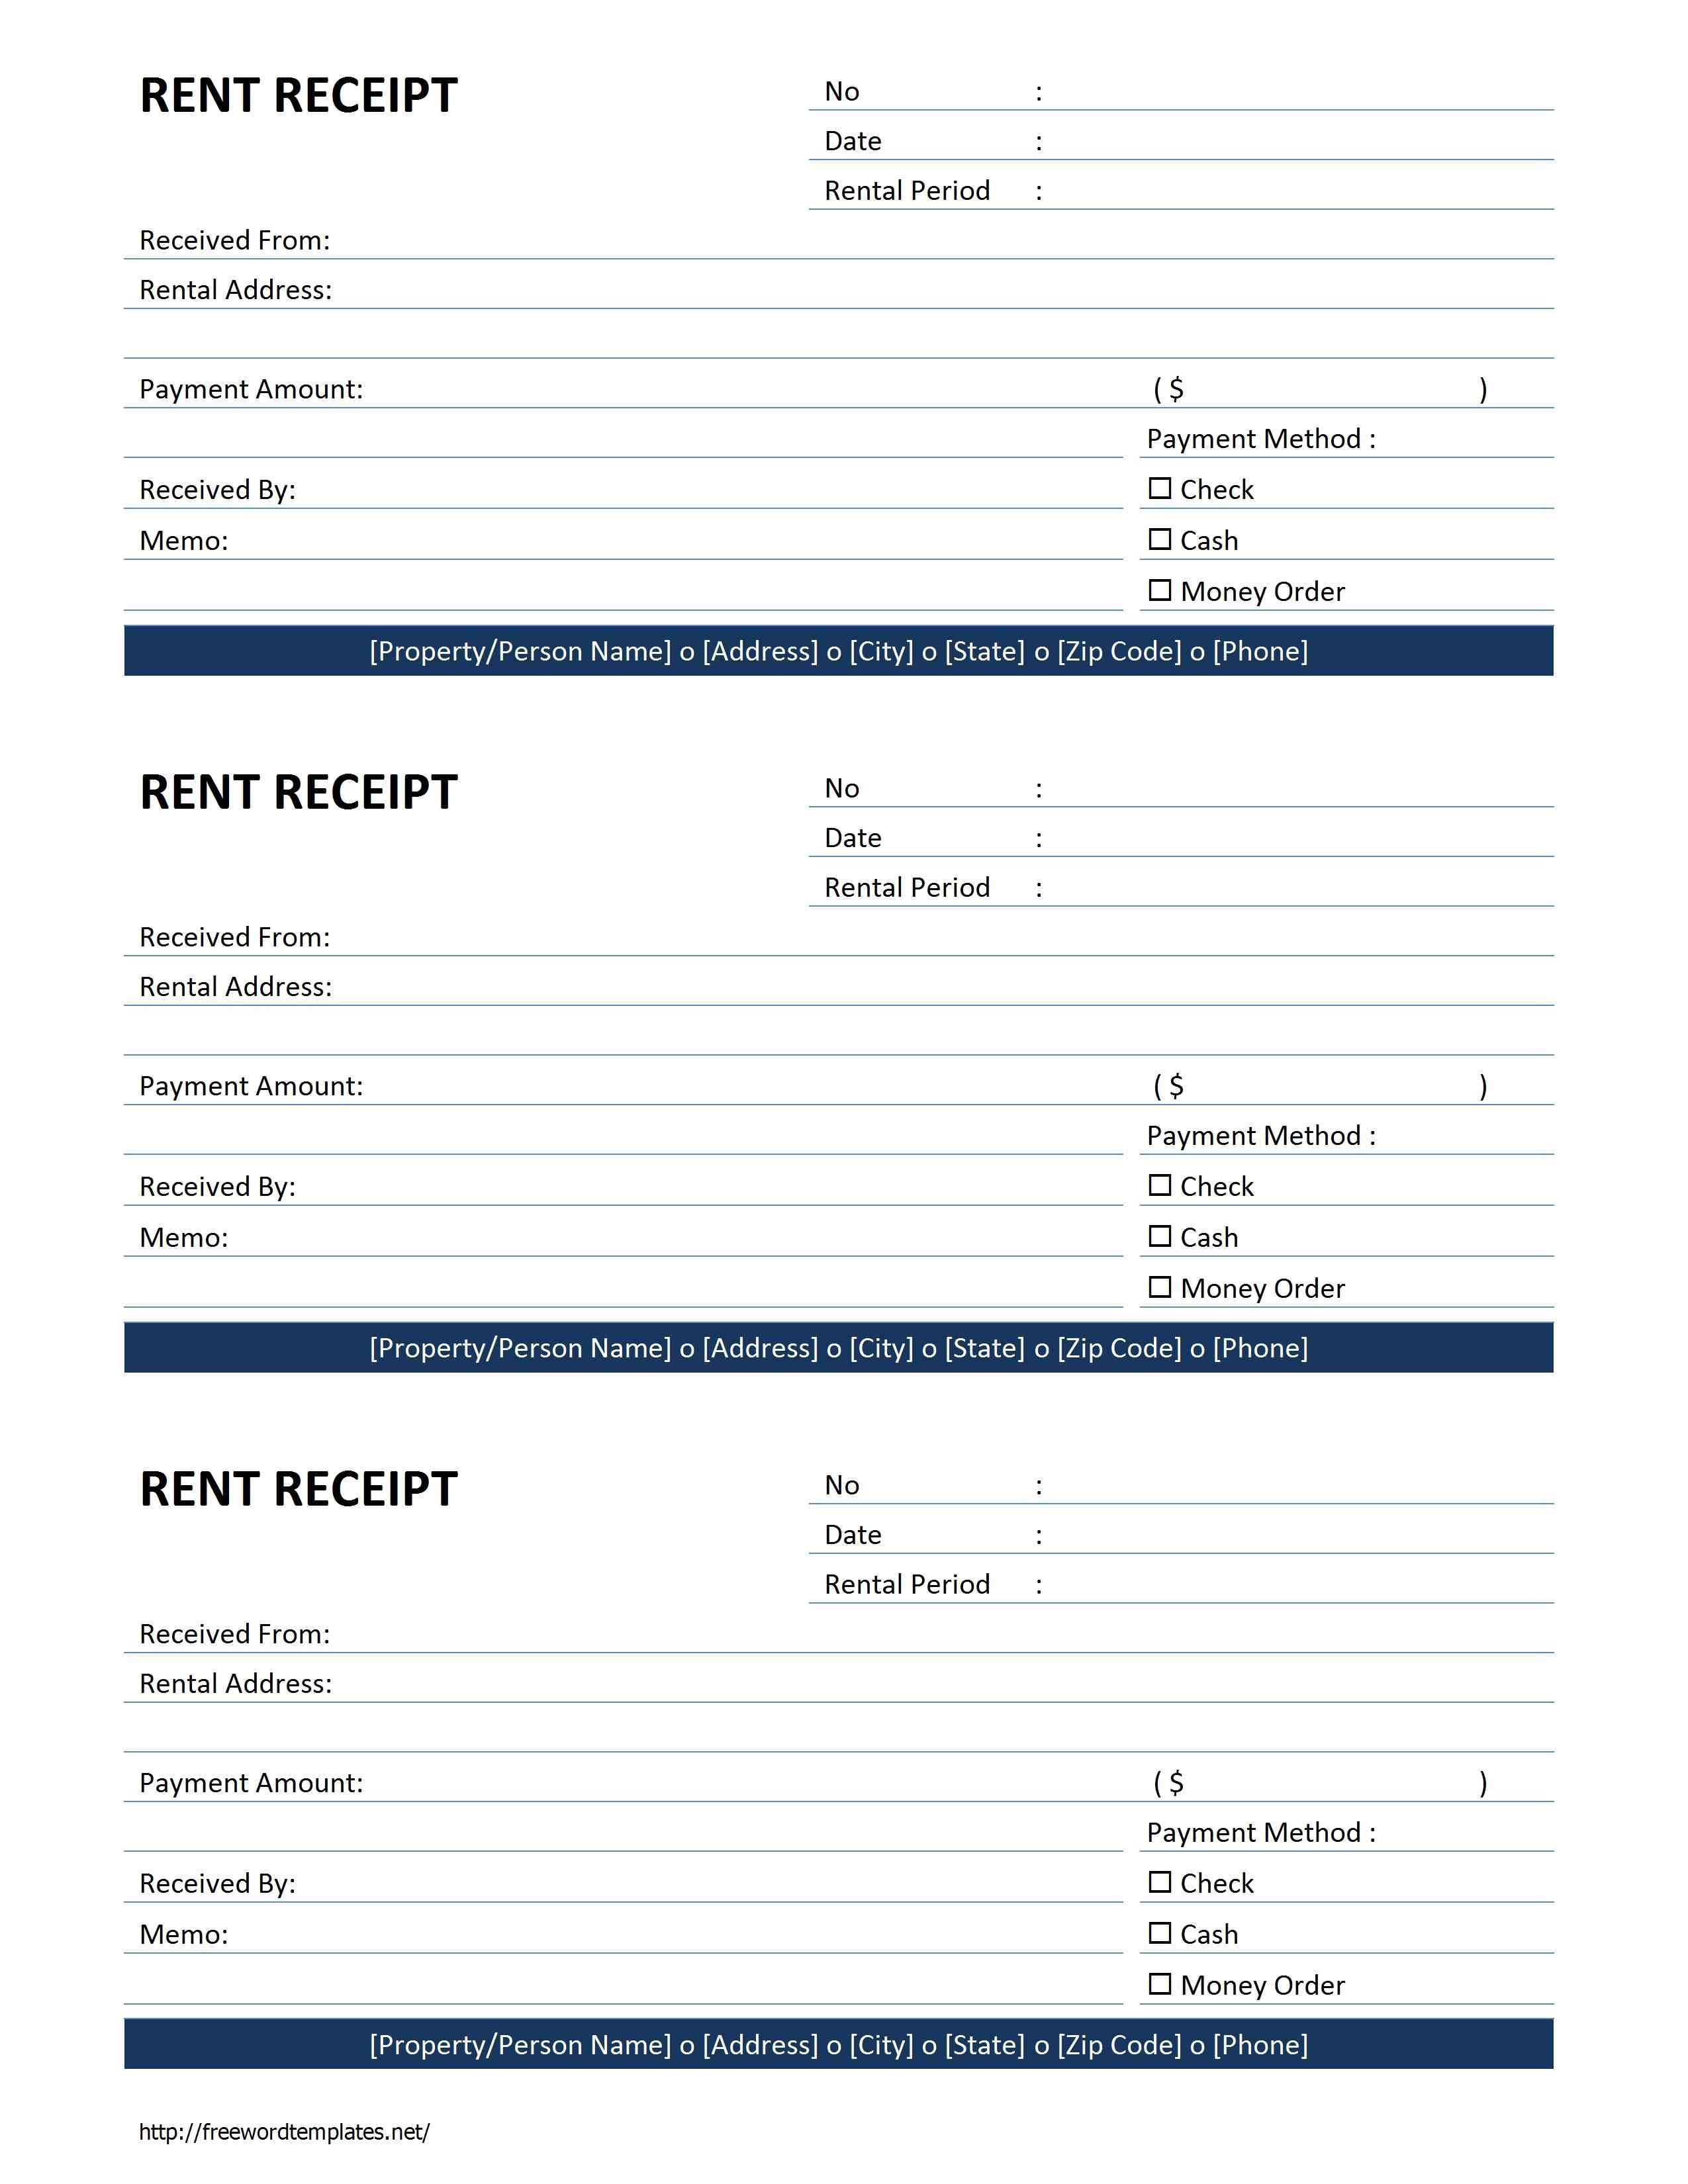 000 Awful Sample Rent Receipt Word Doc Design Full